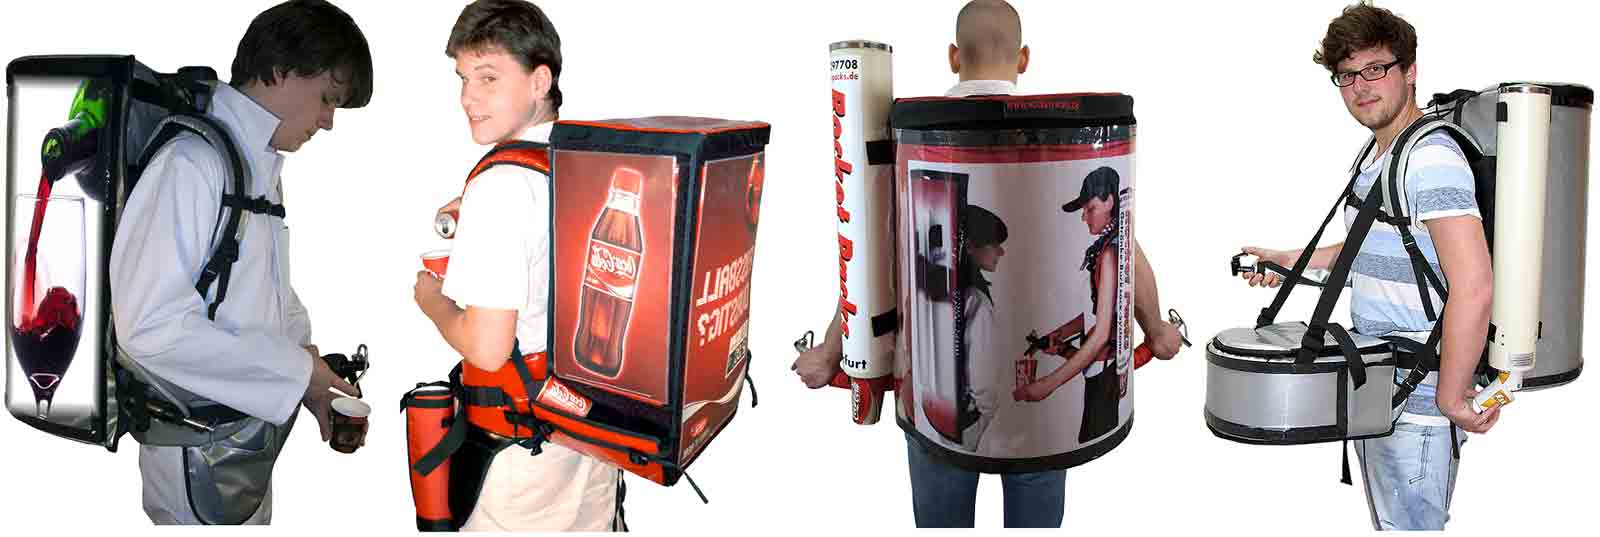 backpack beveragedispenser